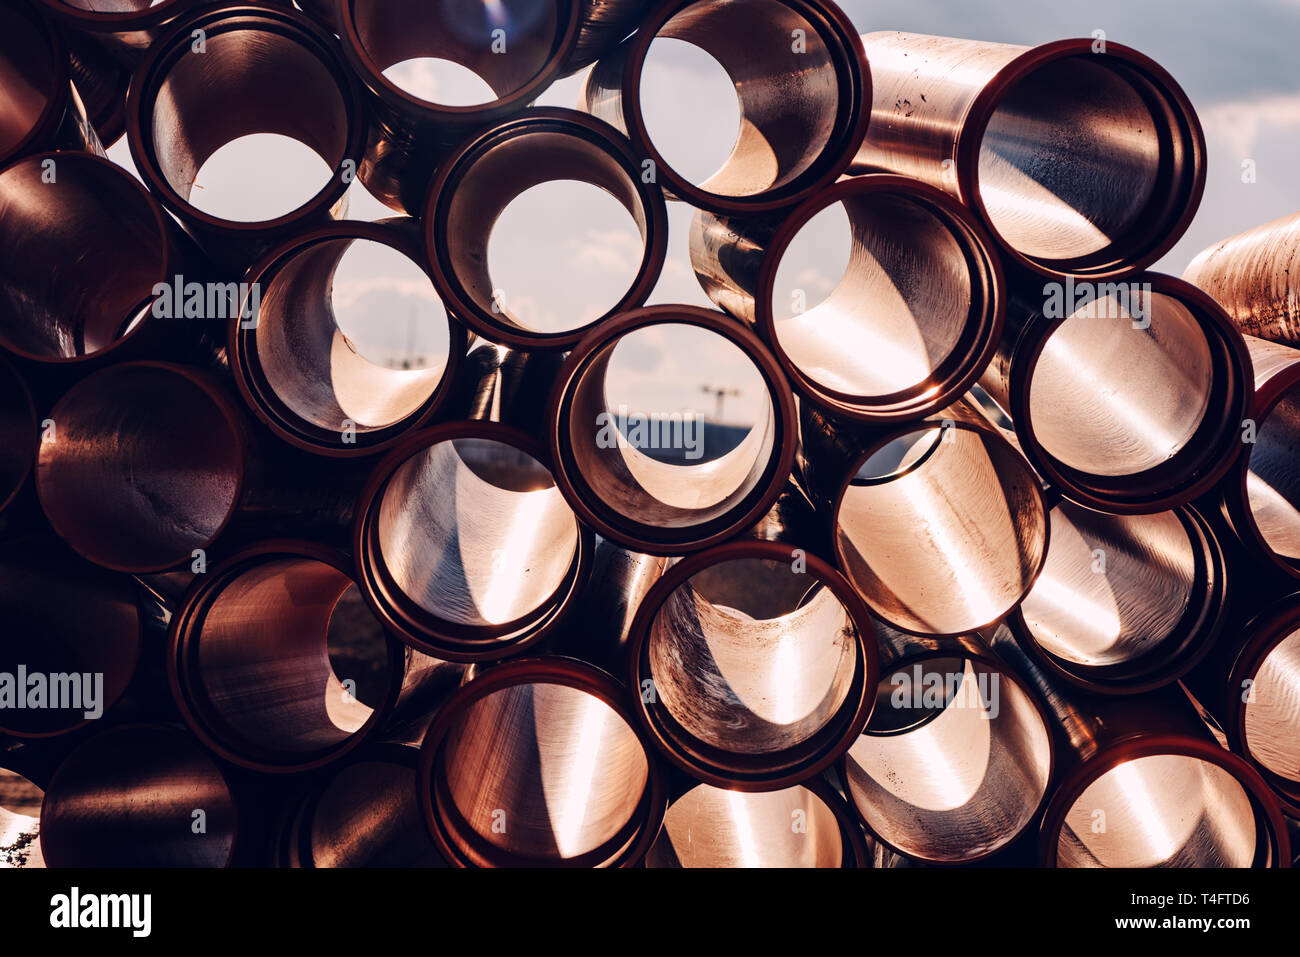 Plastic sewer pipes on construction site for system repairing stacked and ready to be installed - Stock Image